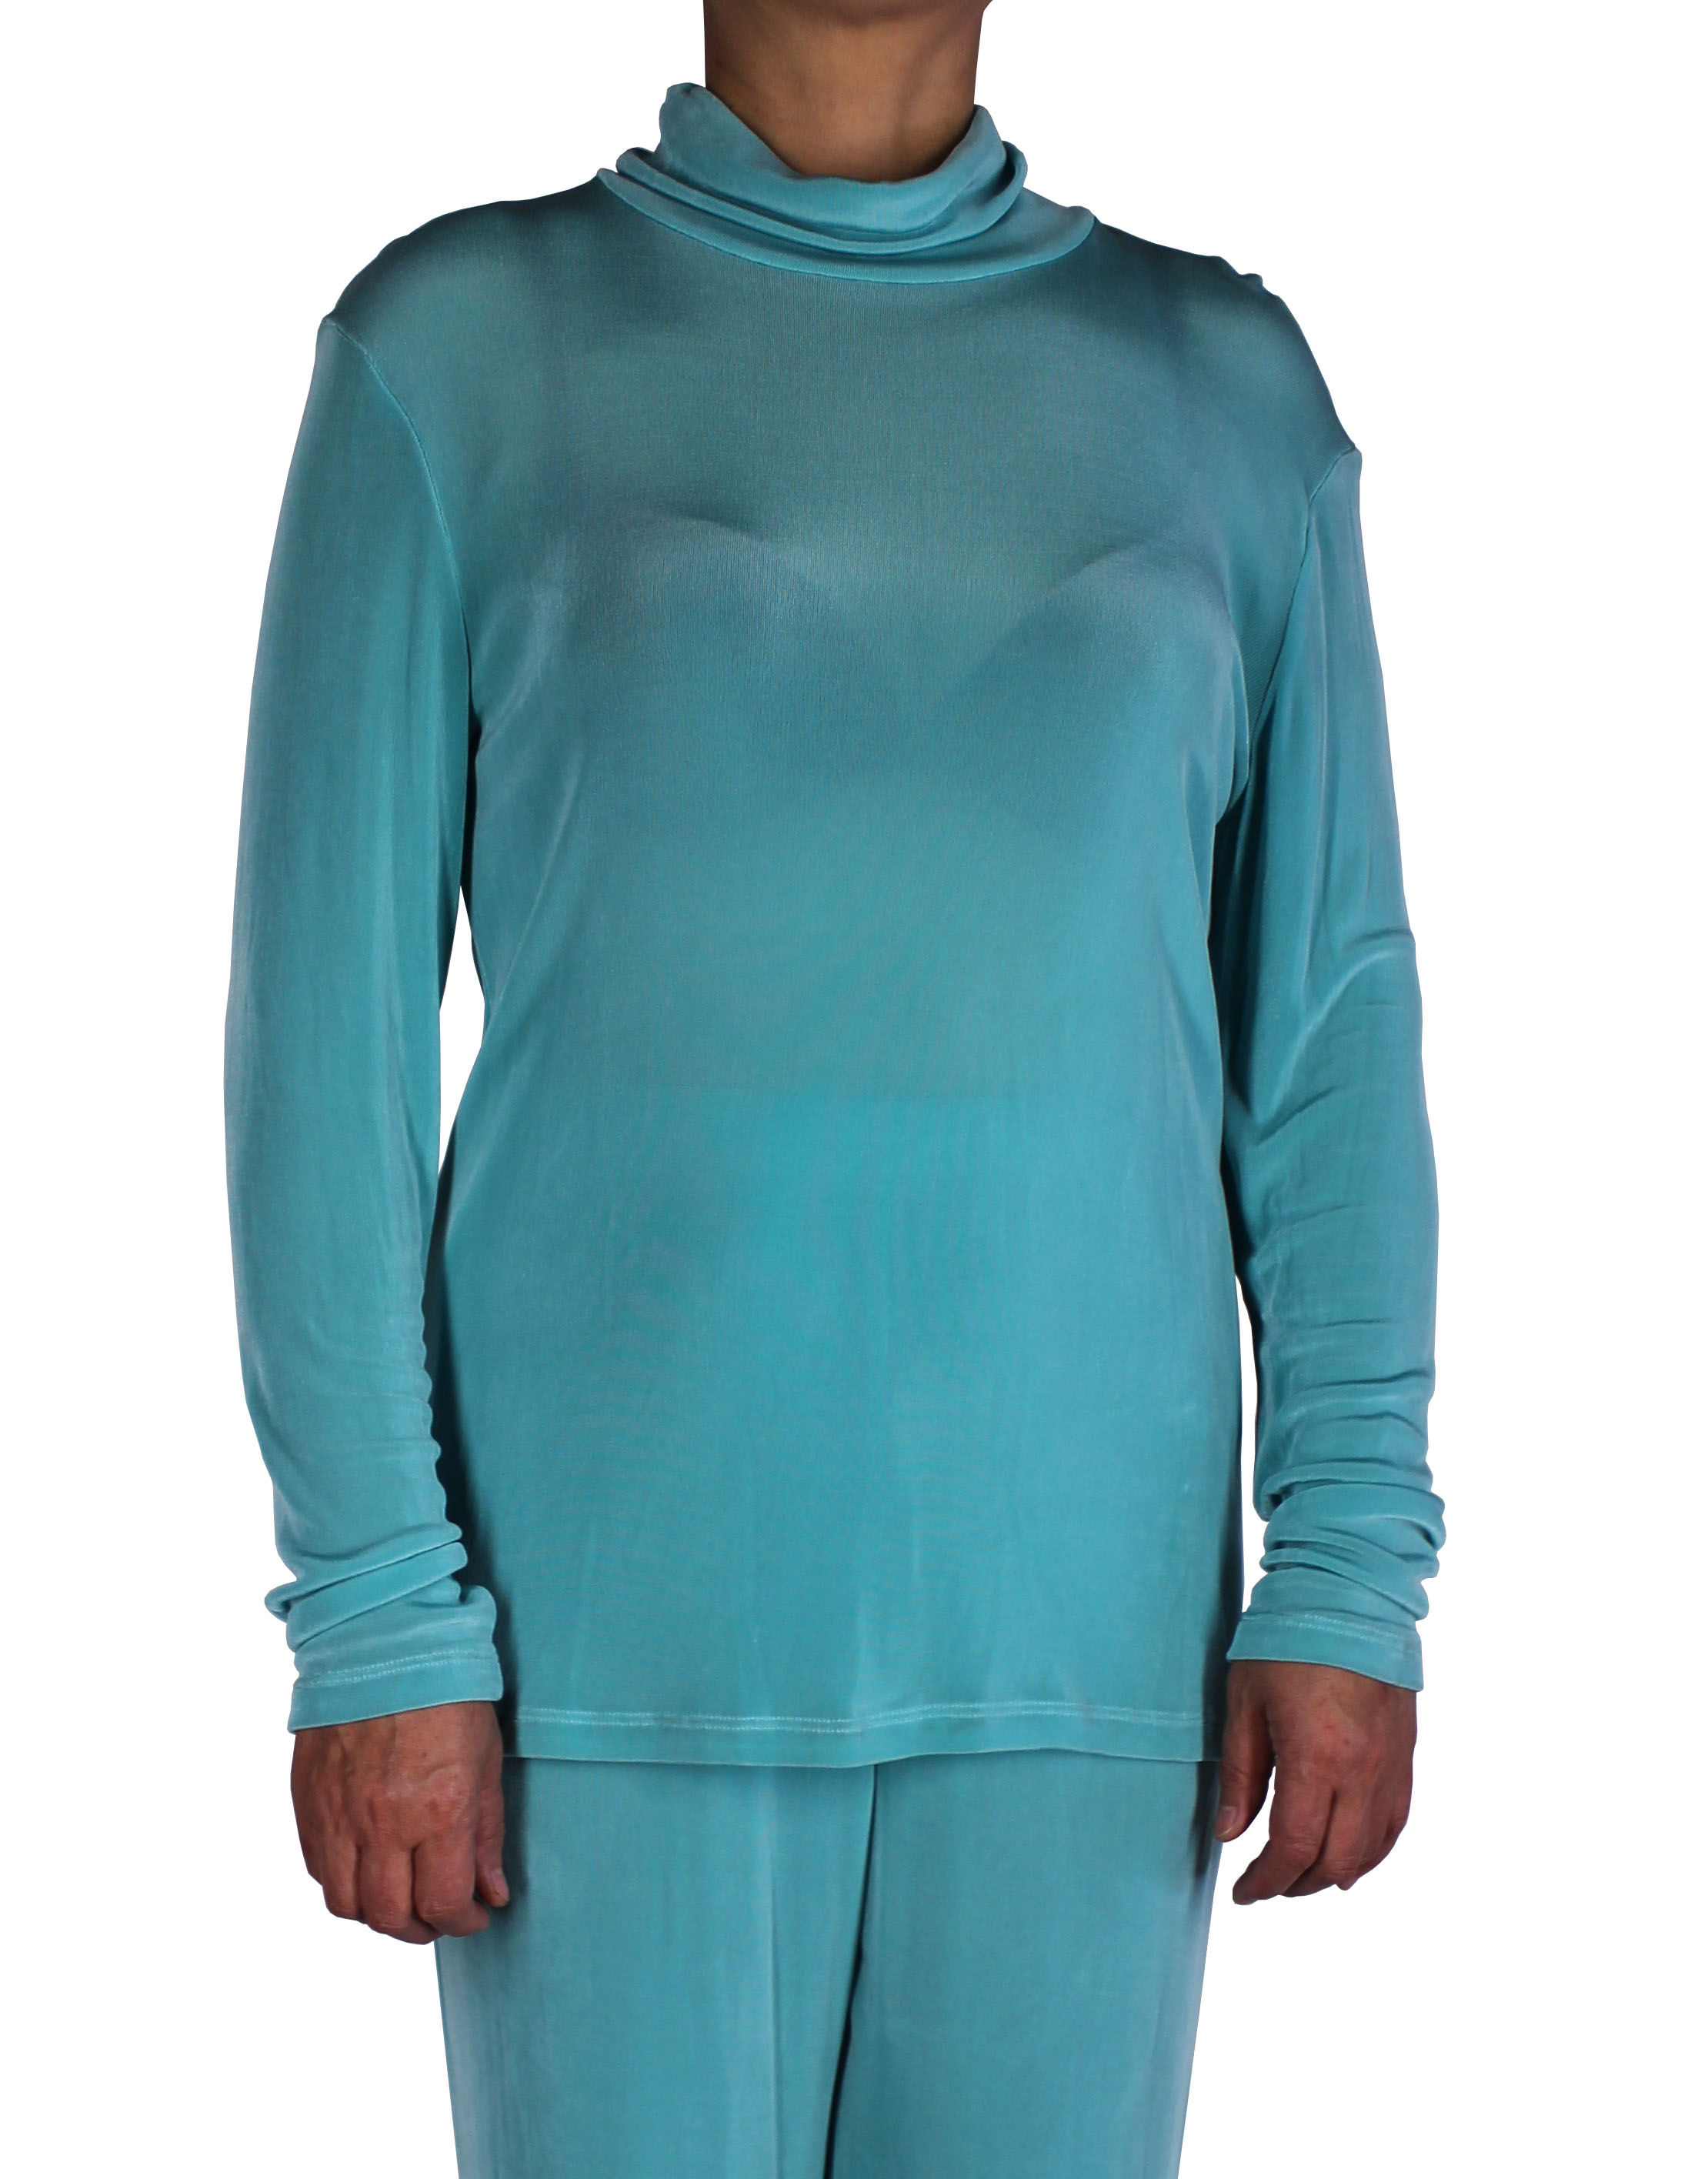 Aqua Women Slinky Mock Neck Long Sleeve Top (H001-3)